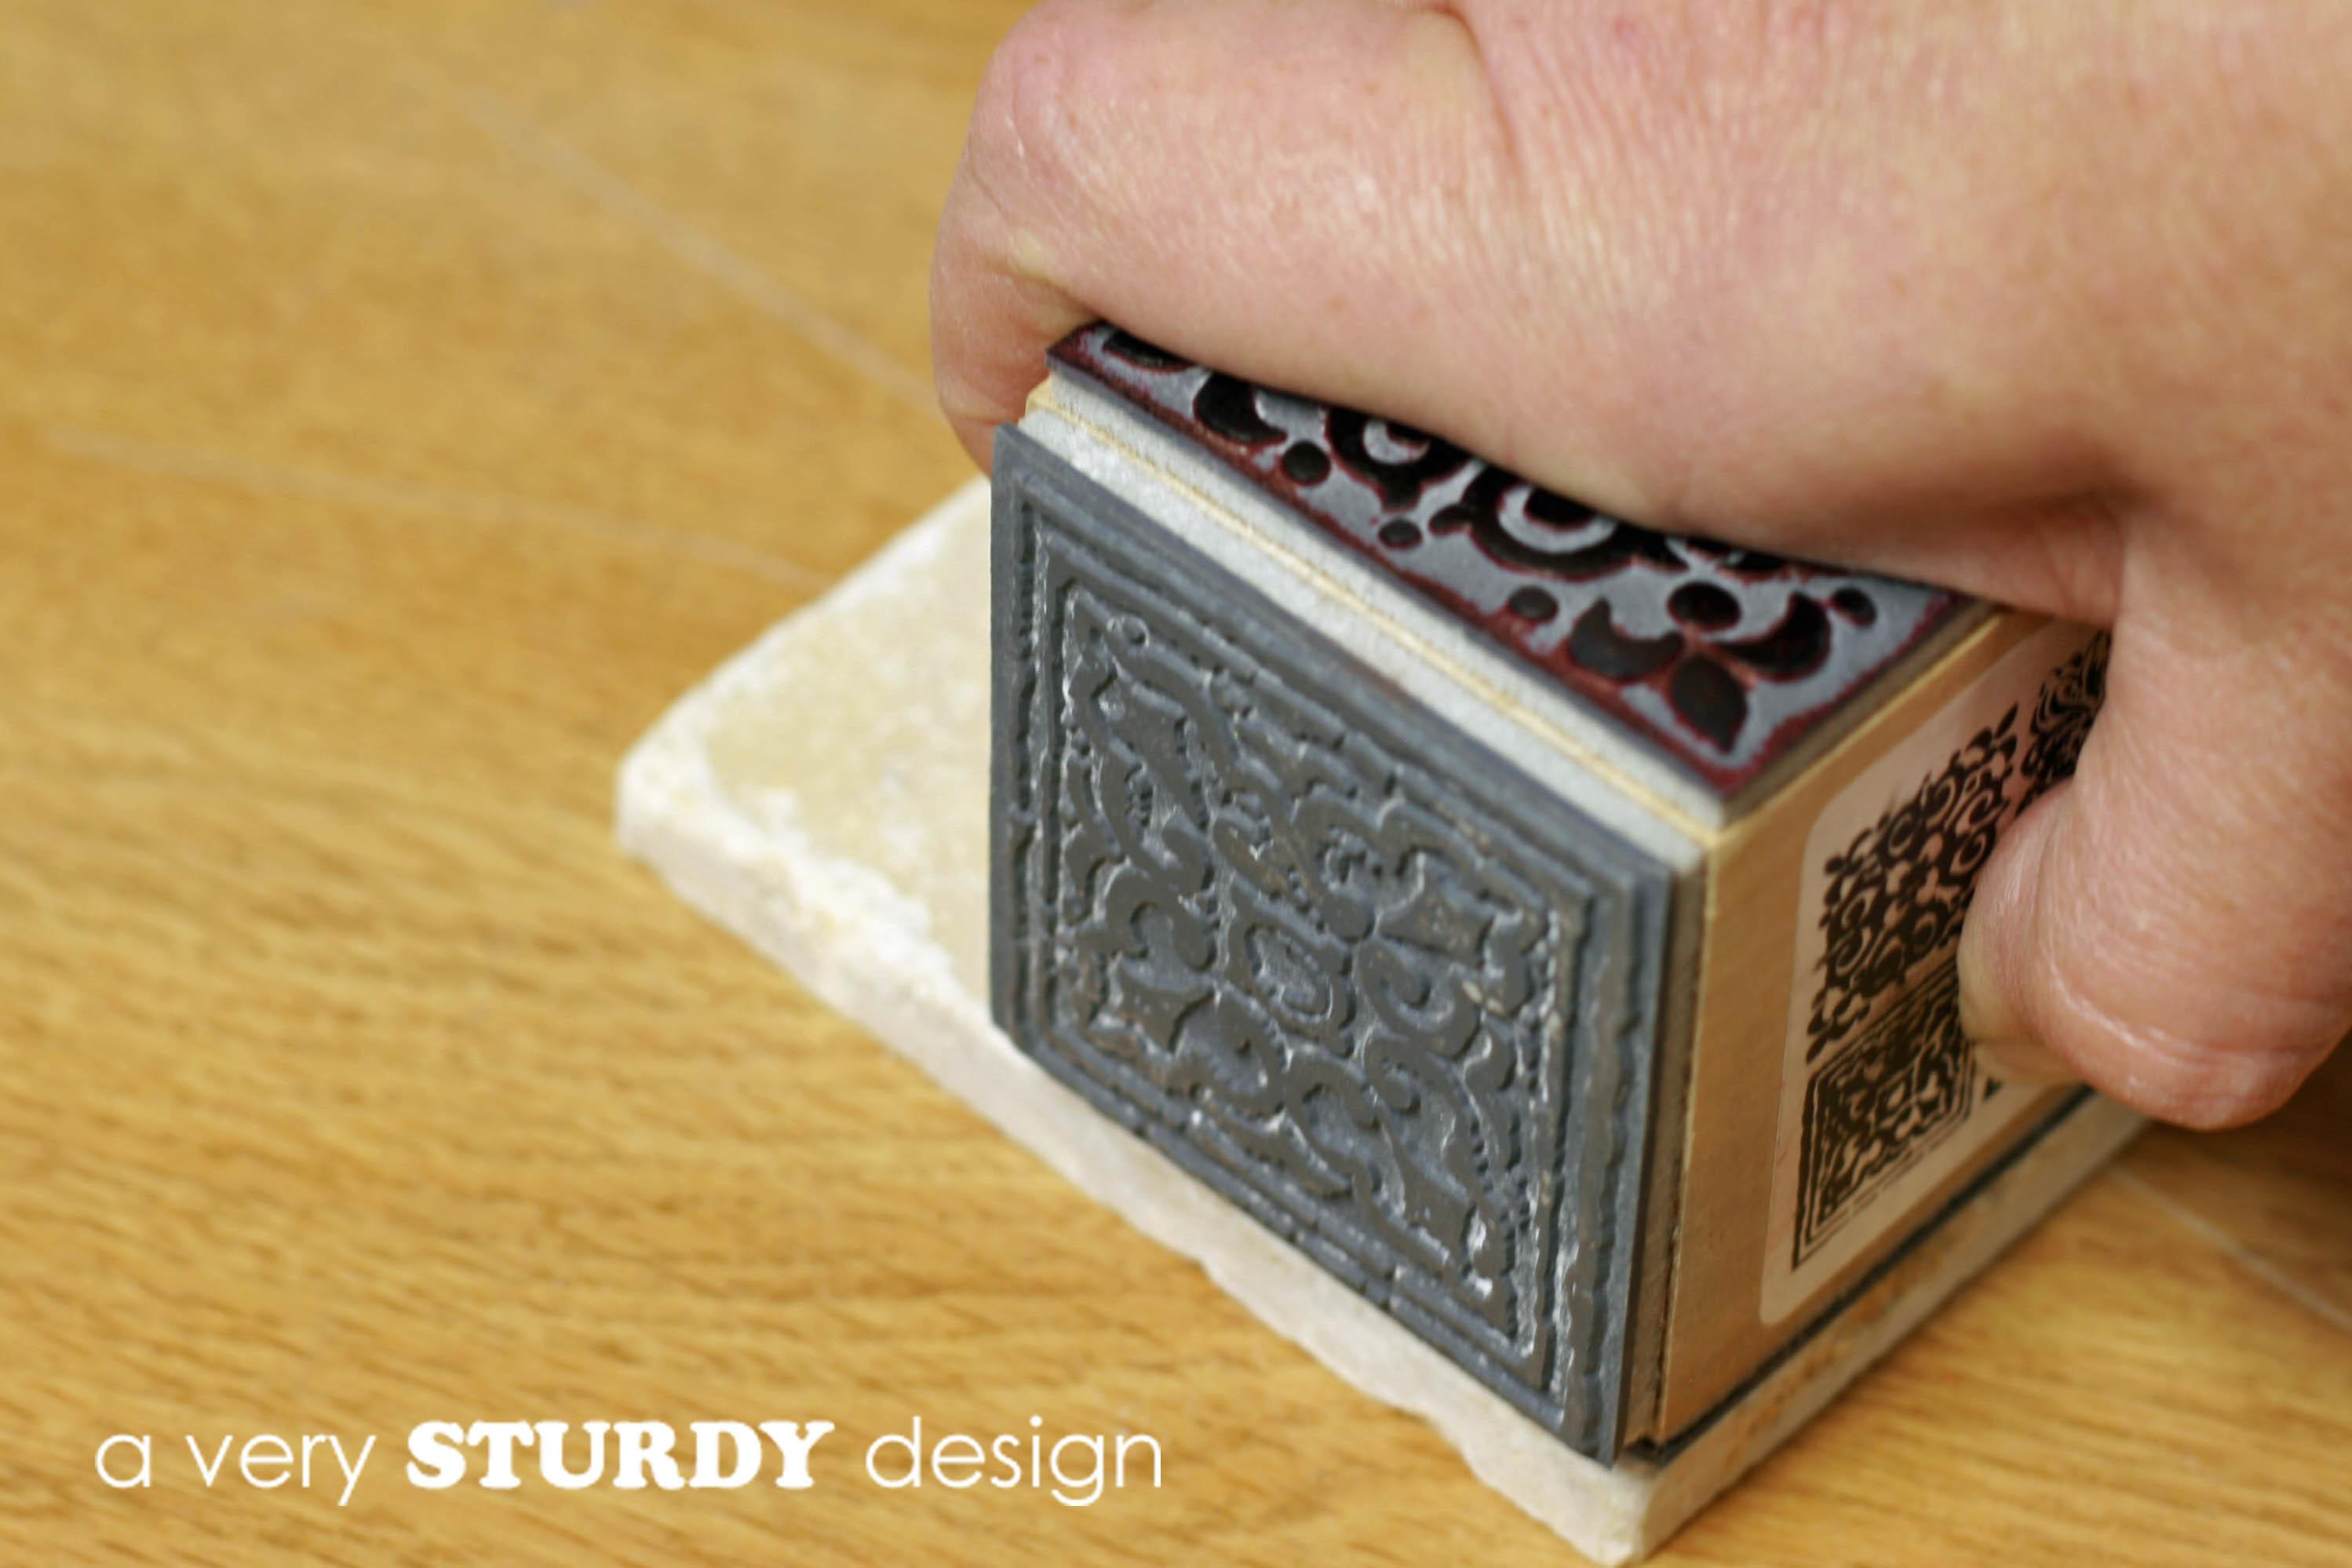 Diy Rubber Stamped Tile Coasters Very Sturdy Design